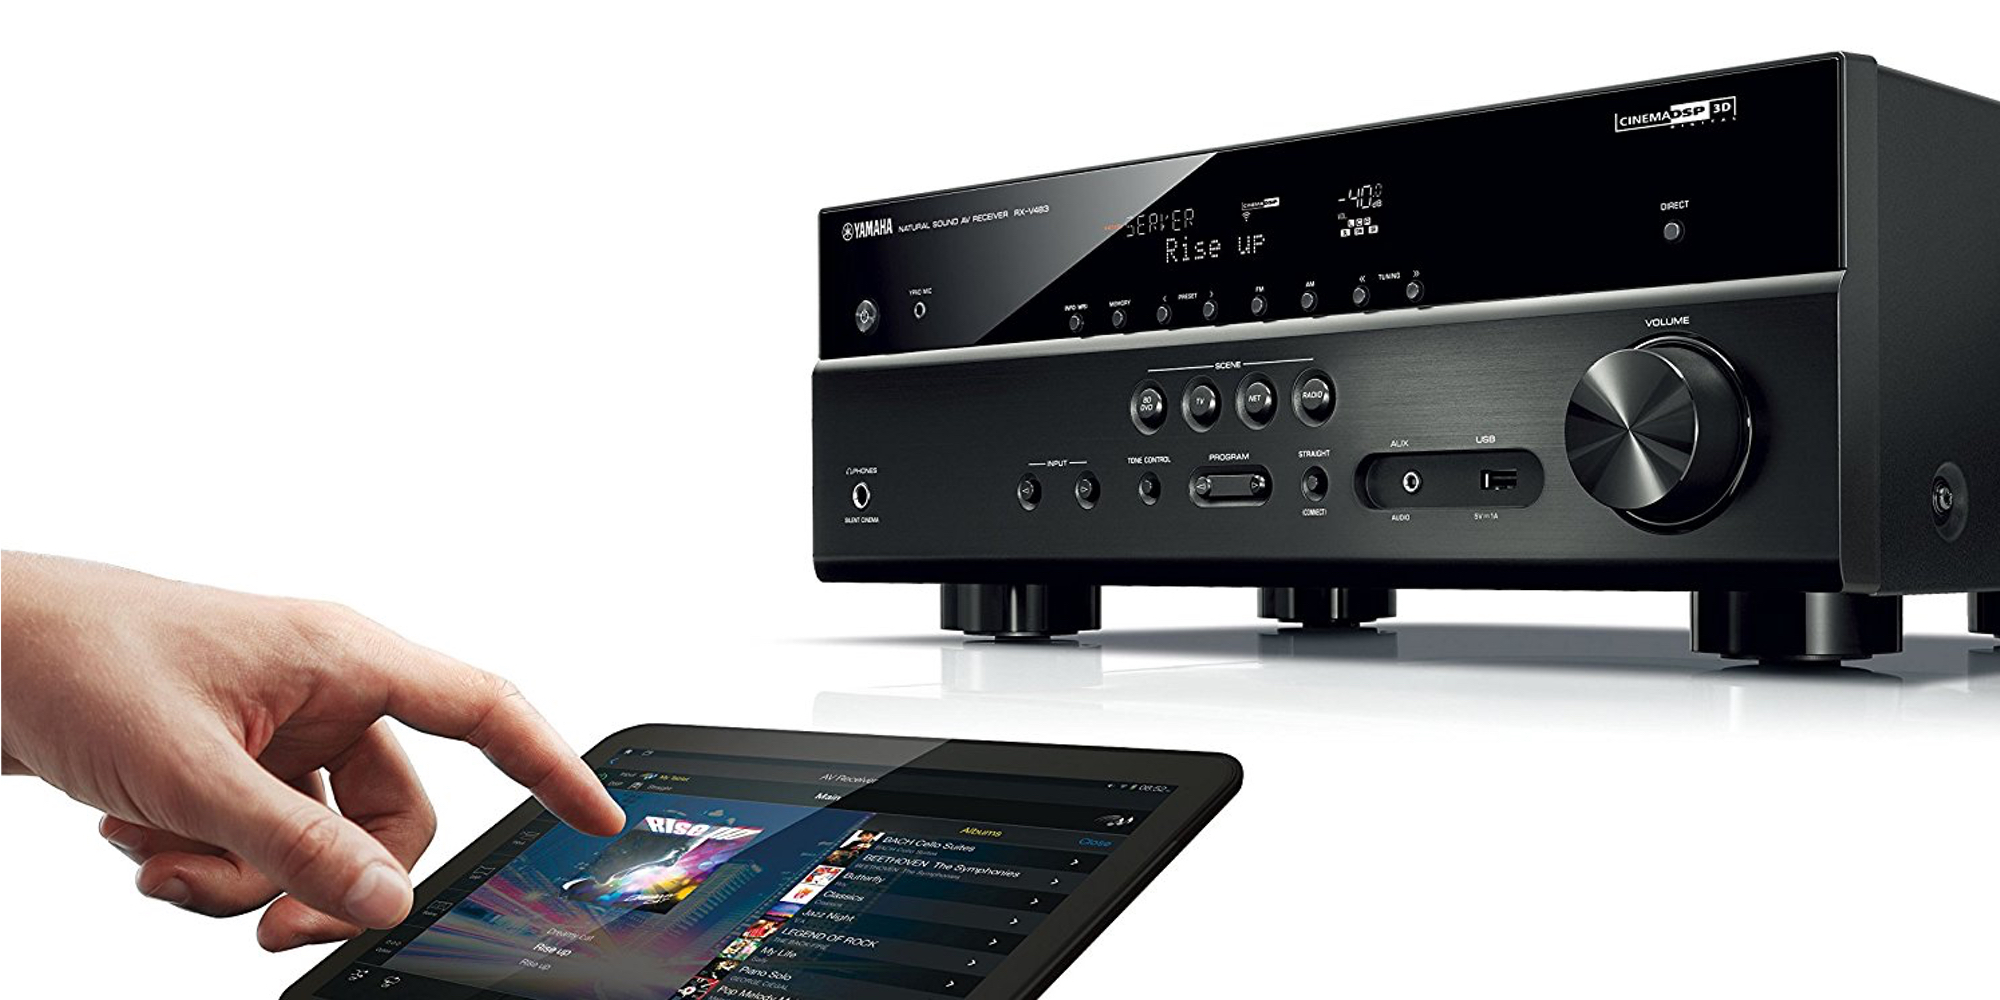 yamaha 5 1 ch 4k a v receiver w airplay support for 330. Black Bedroom Furniture Sets. Home Design Ideas